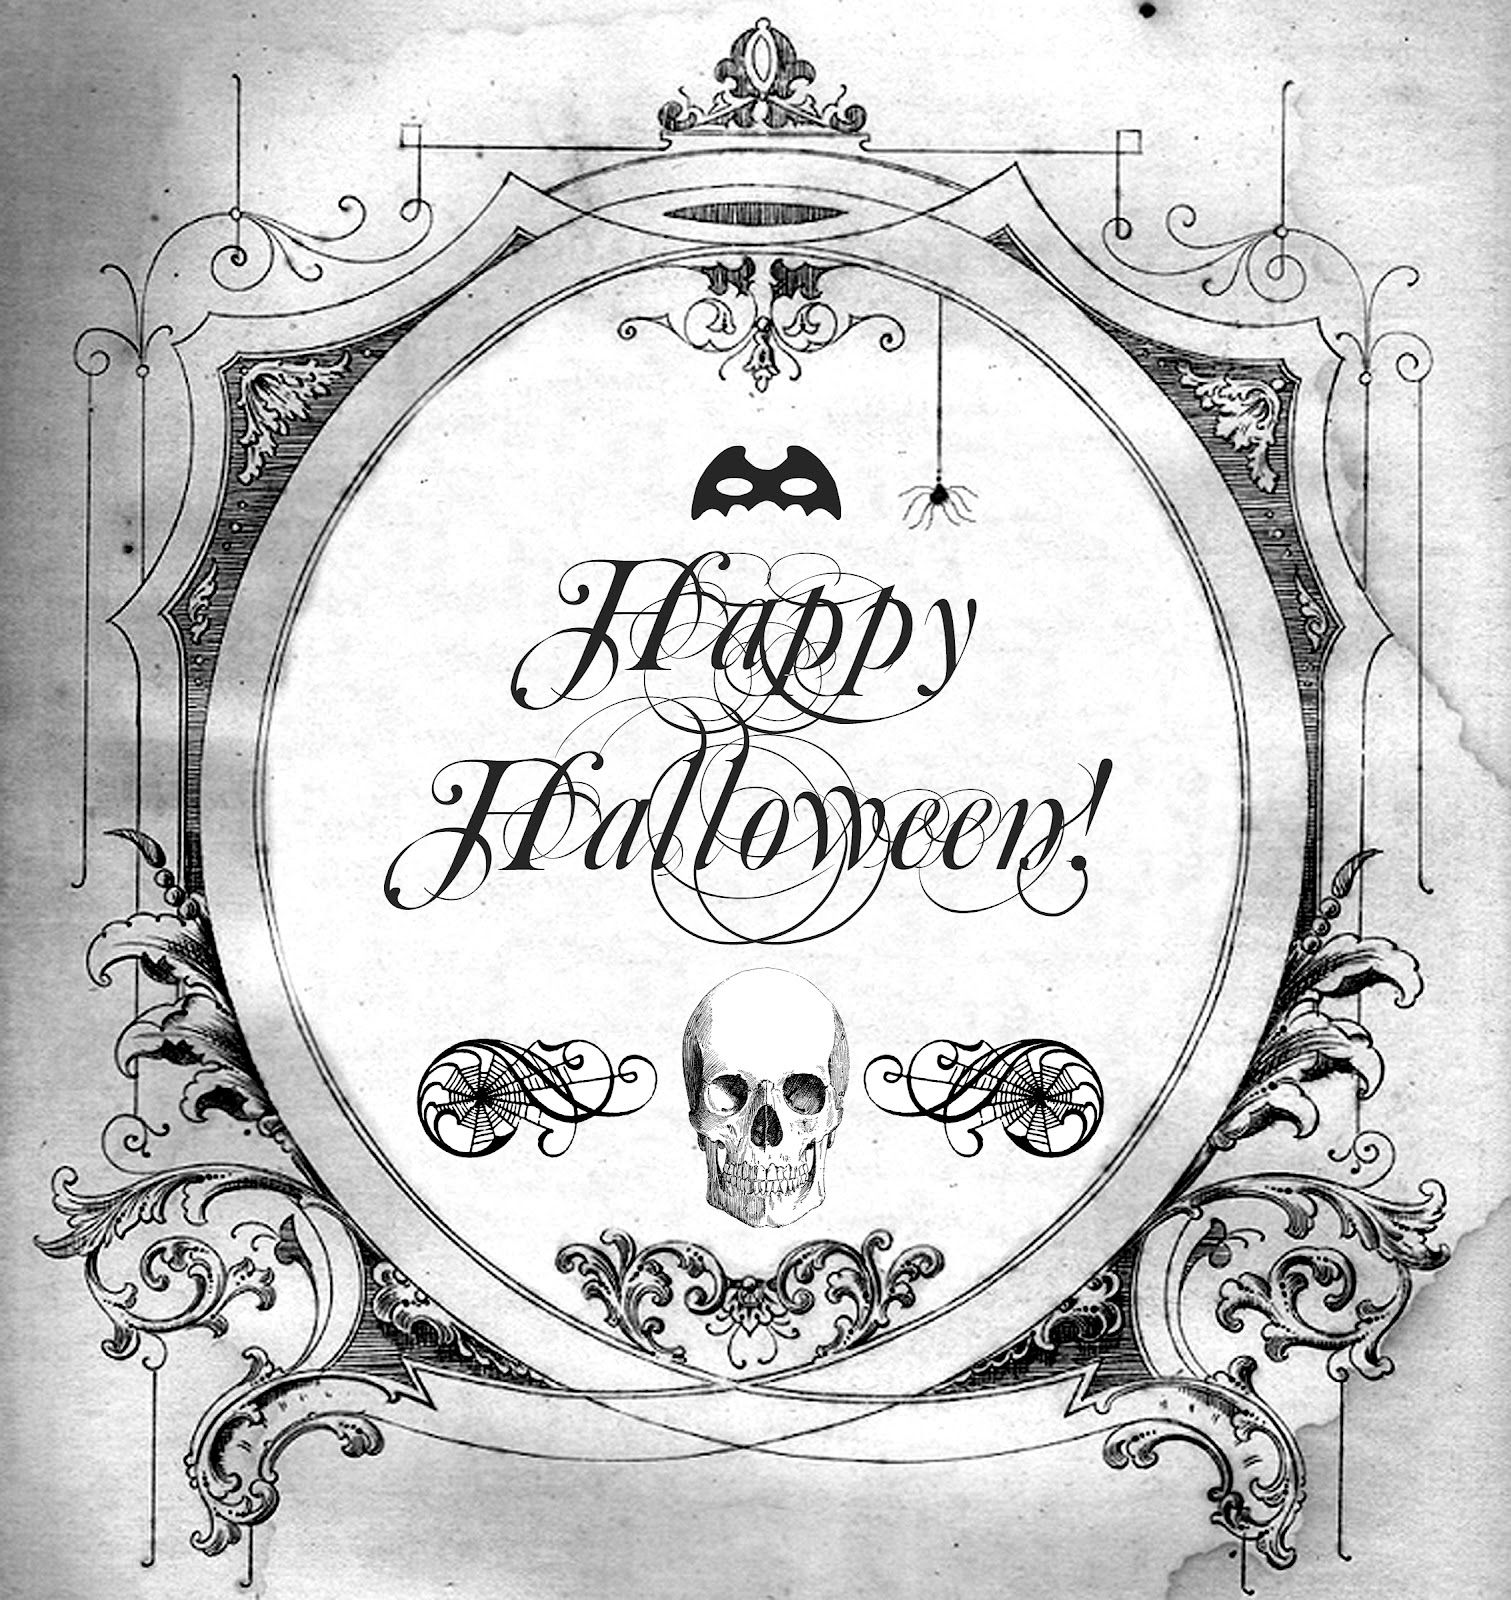 Anythingat Thr End Of Halloween 2020 Halloween FREE PRINTABLE for transfers prints tags anything at all